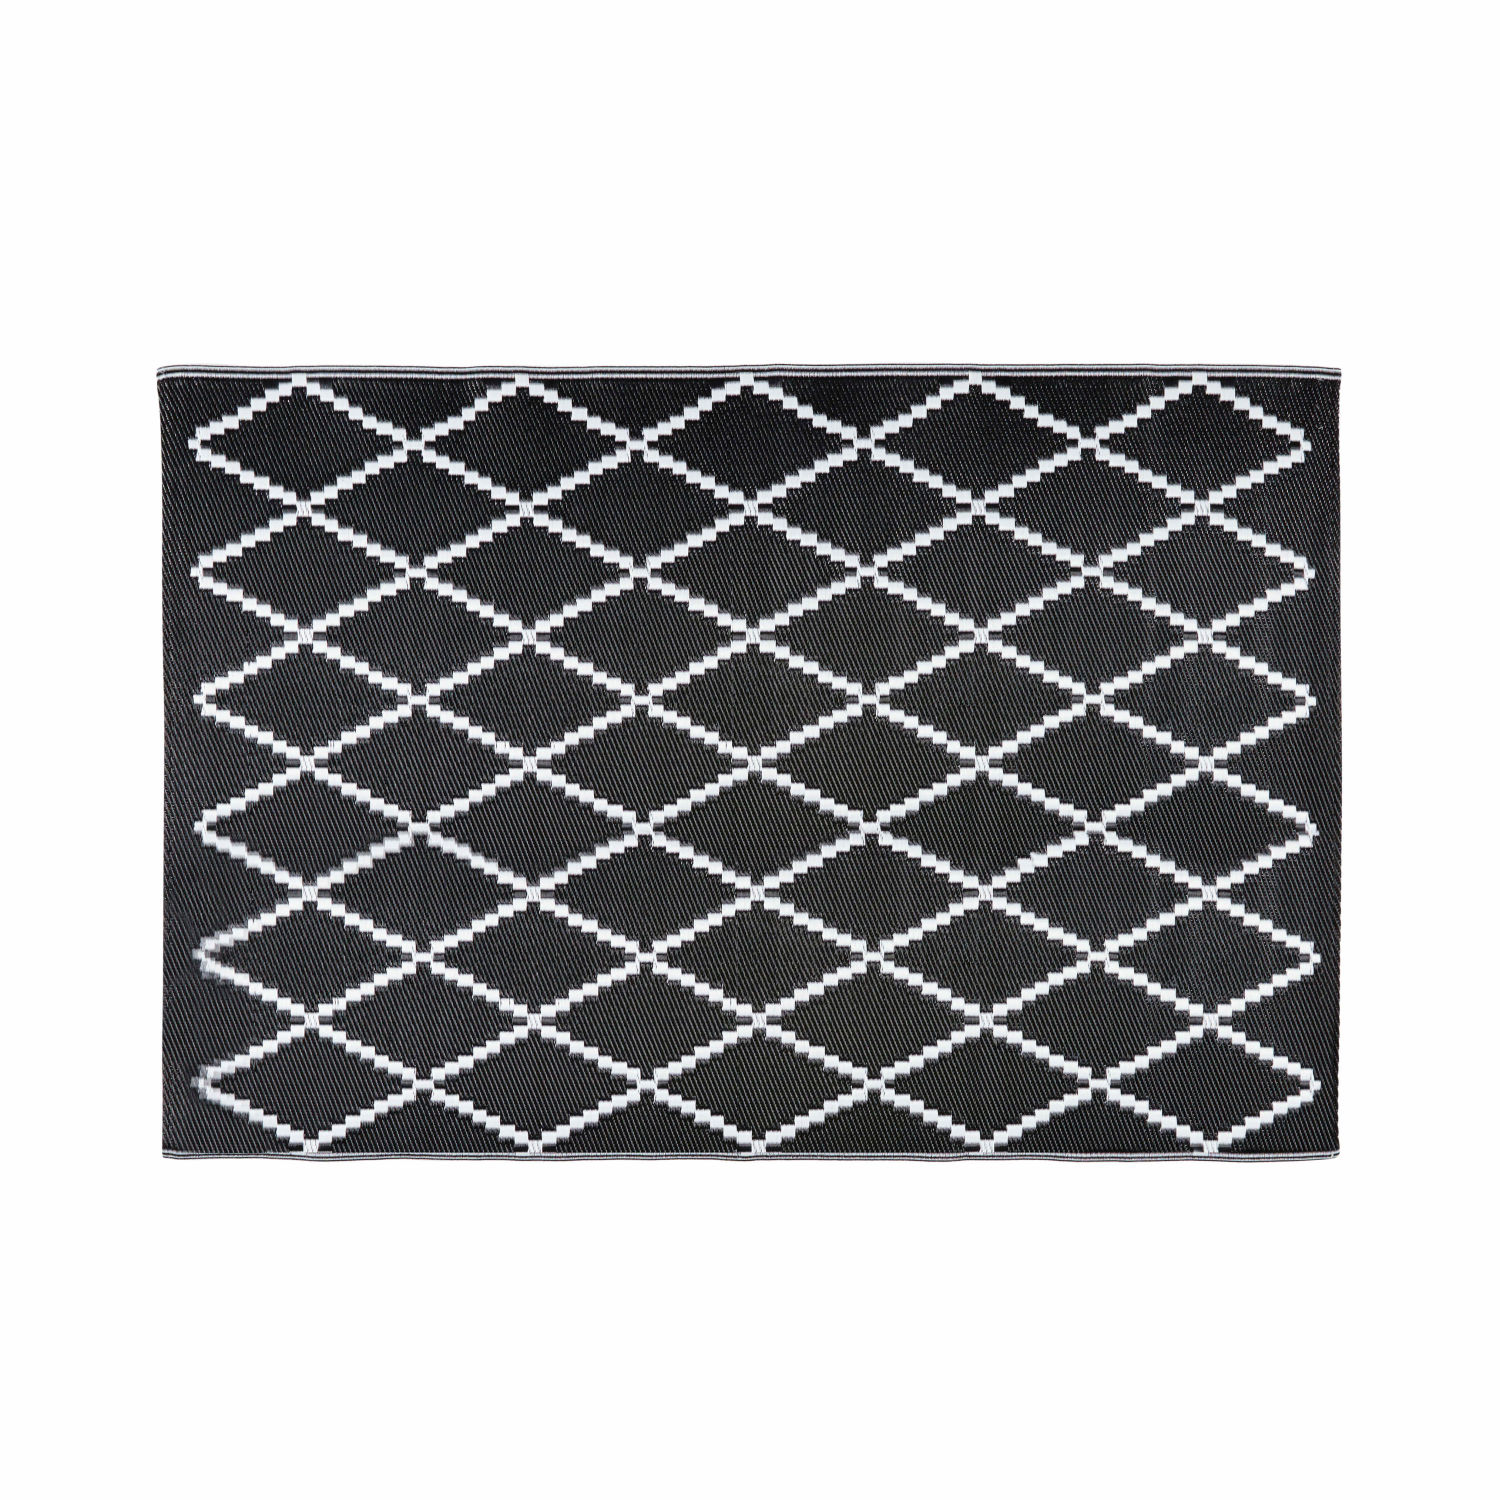 Black And White Geometric Rugs For Sale: Black And White Geometric Motif Outdoor Rug 120x180